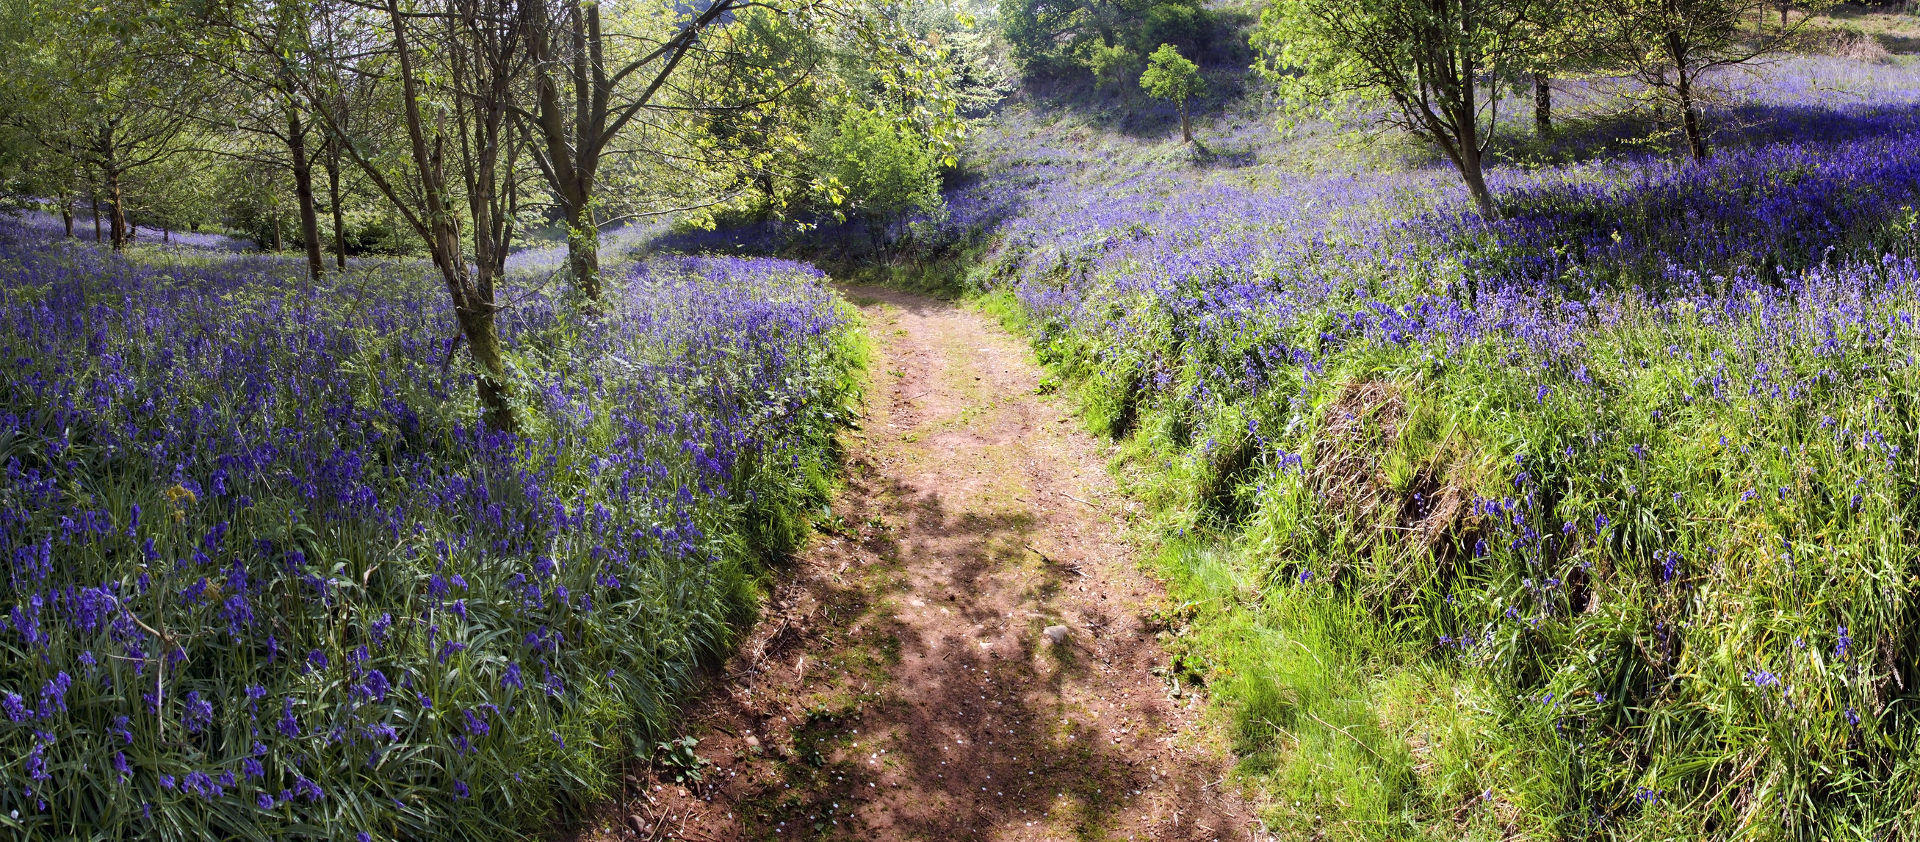 BLUEBELLS IN WOOD © Davidmartyn | Dreamstime.com